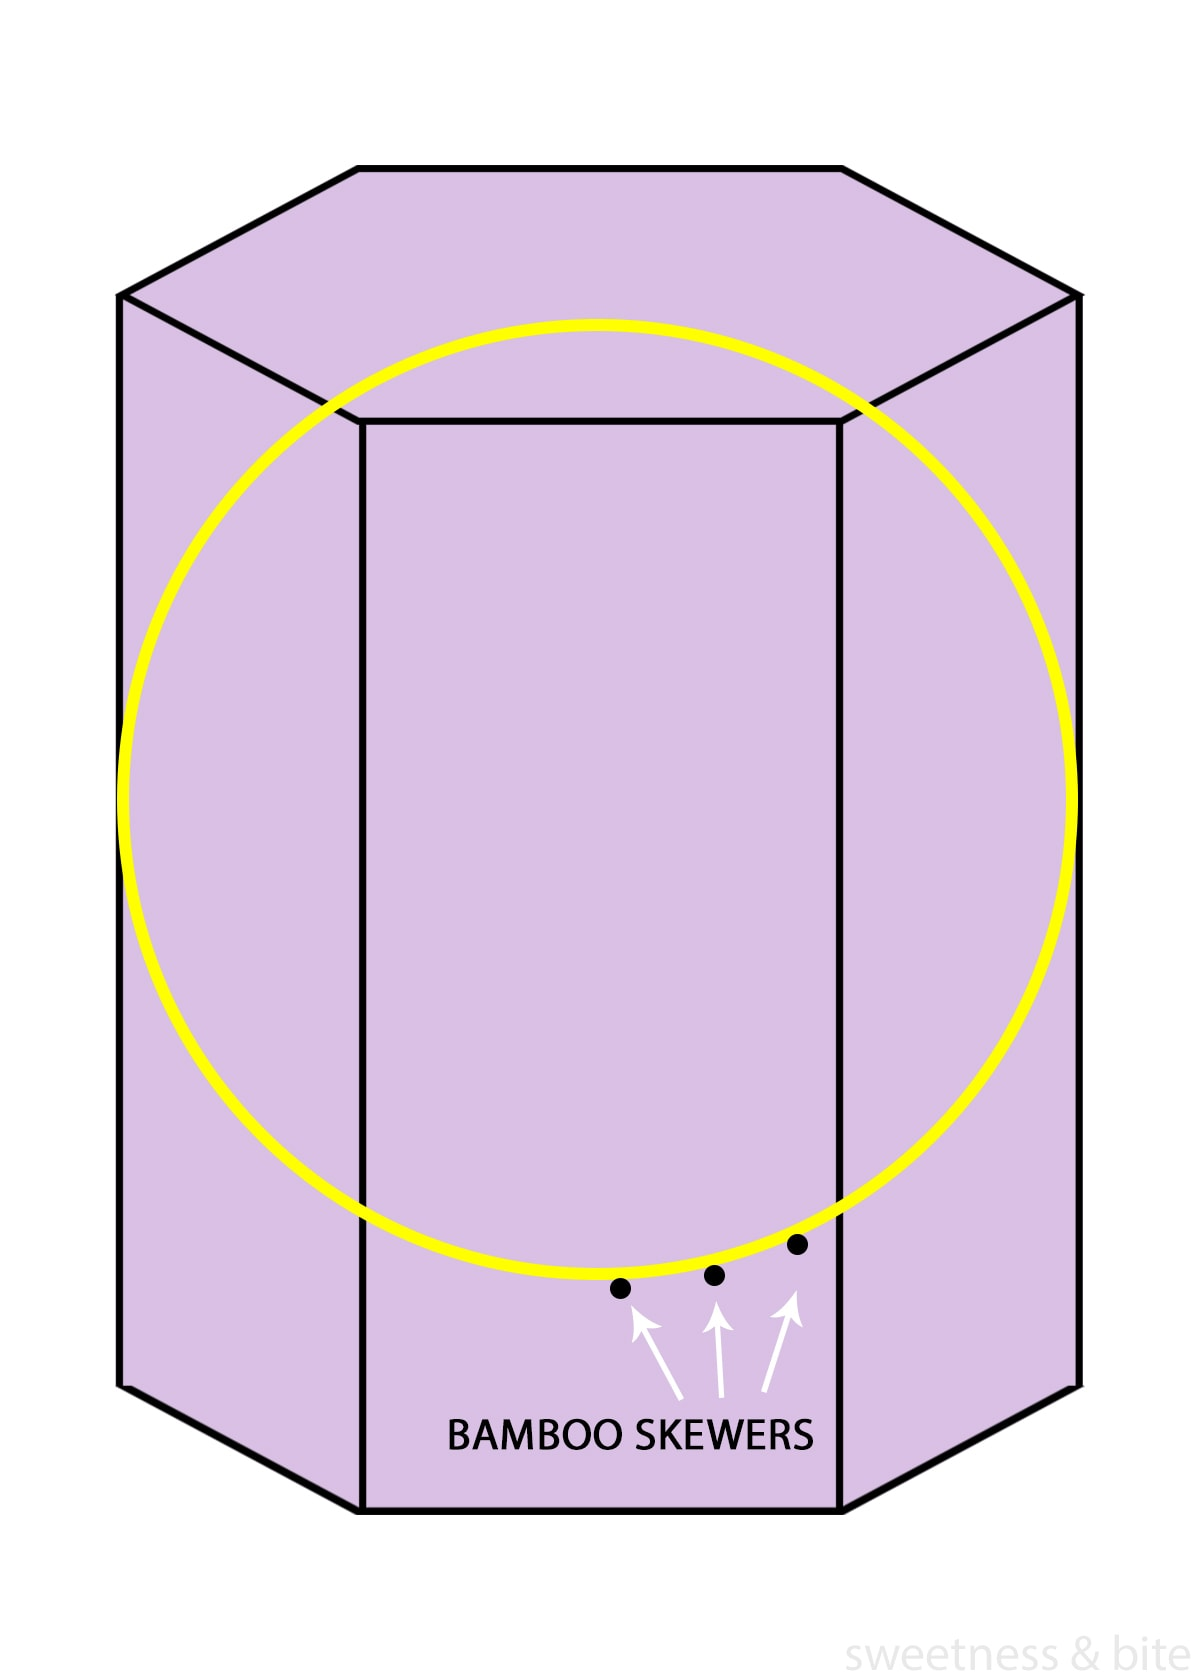 A diagram showing where to insert the skewers under the floral cake topper hoop to hold it up against the cake.